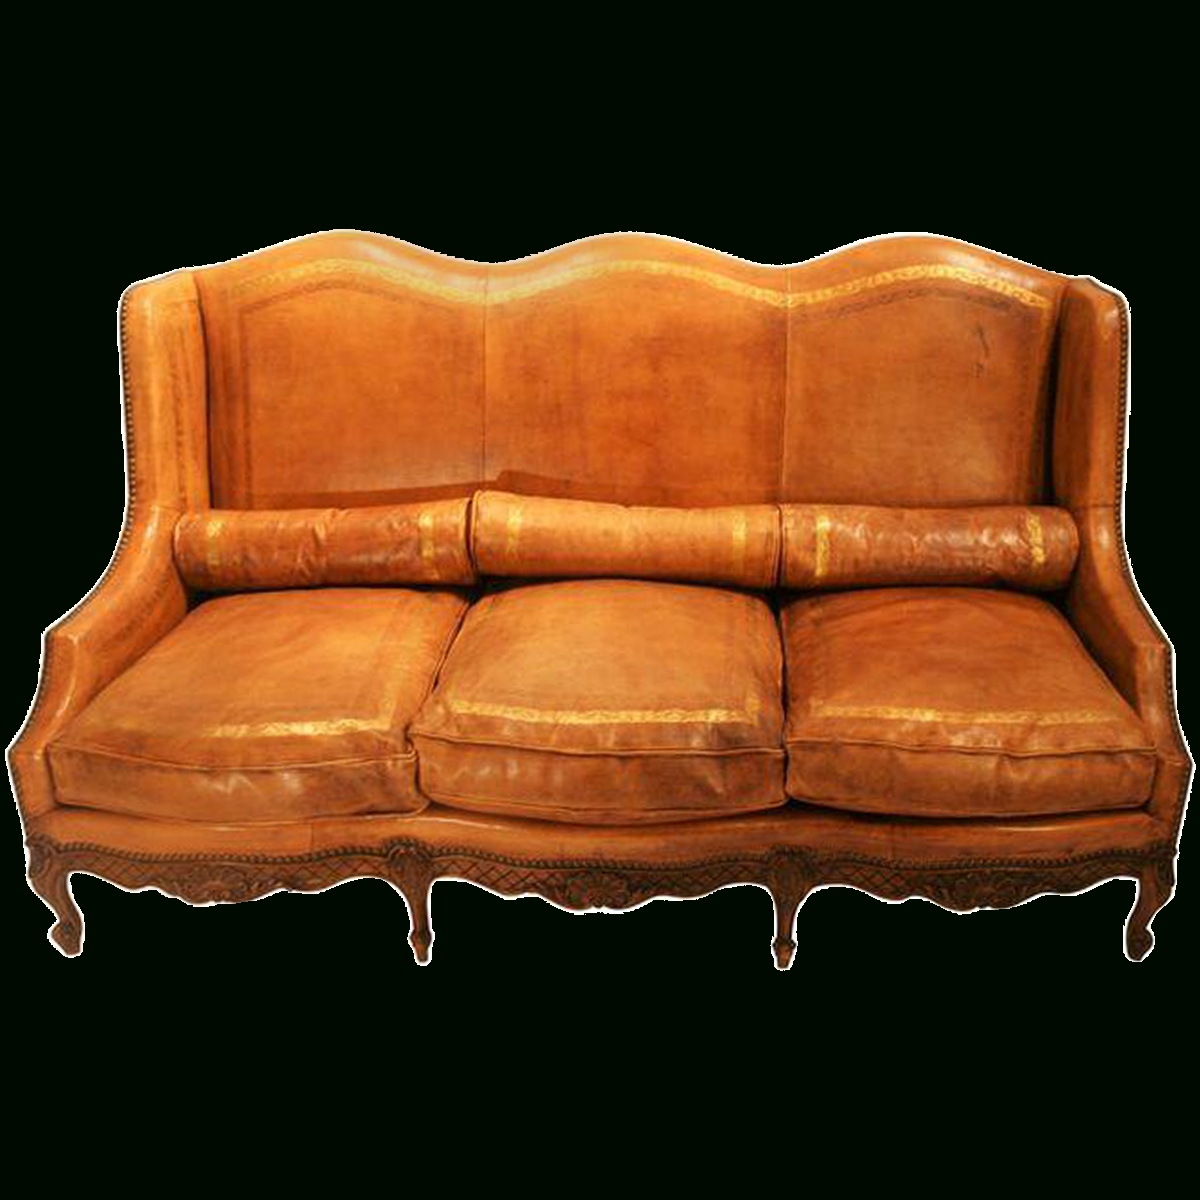 Viyet - Designer Furniture - Seating - Antique Louis Xv Camelback with Camelback Leather Sofas (Image 15 of 15)